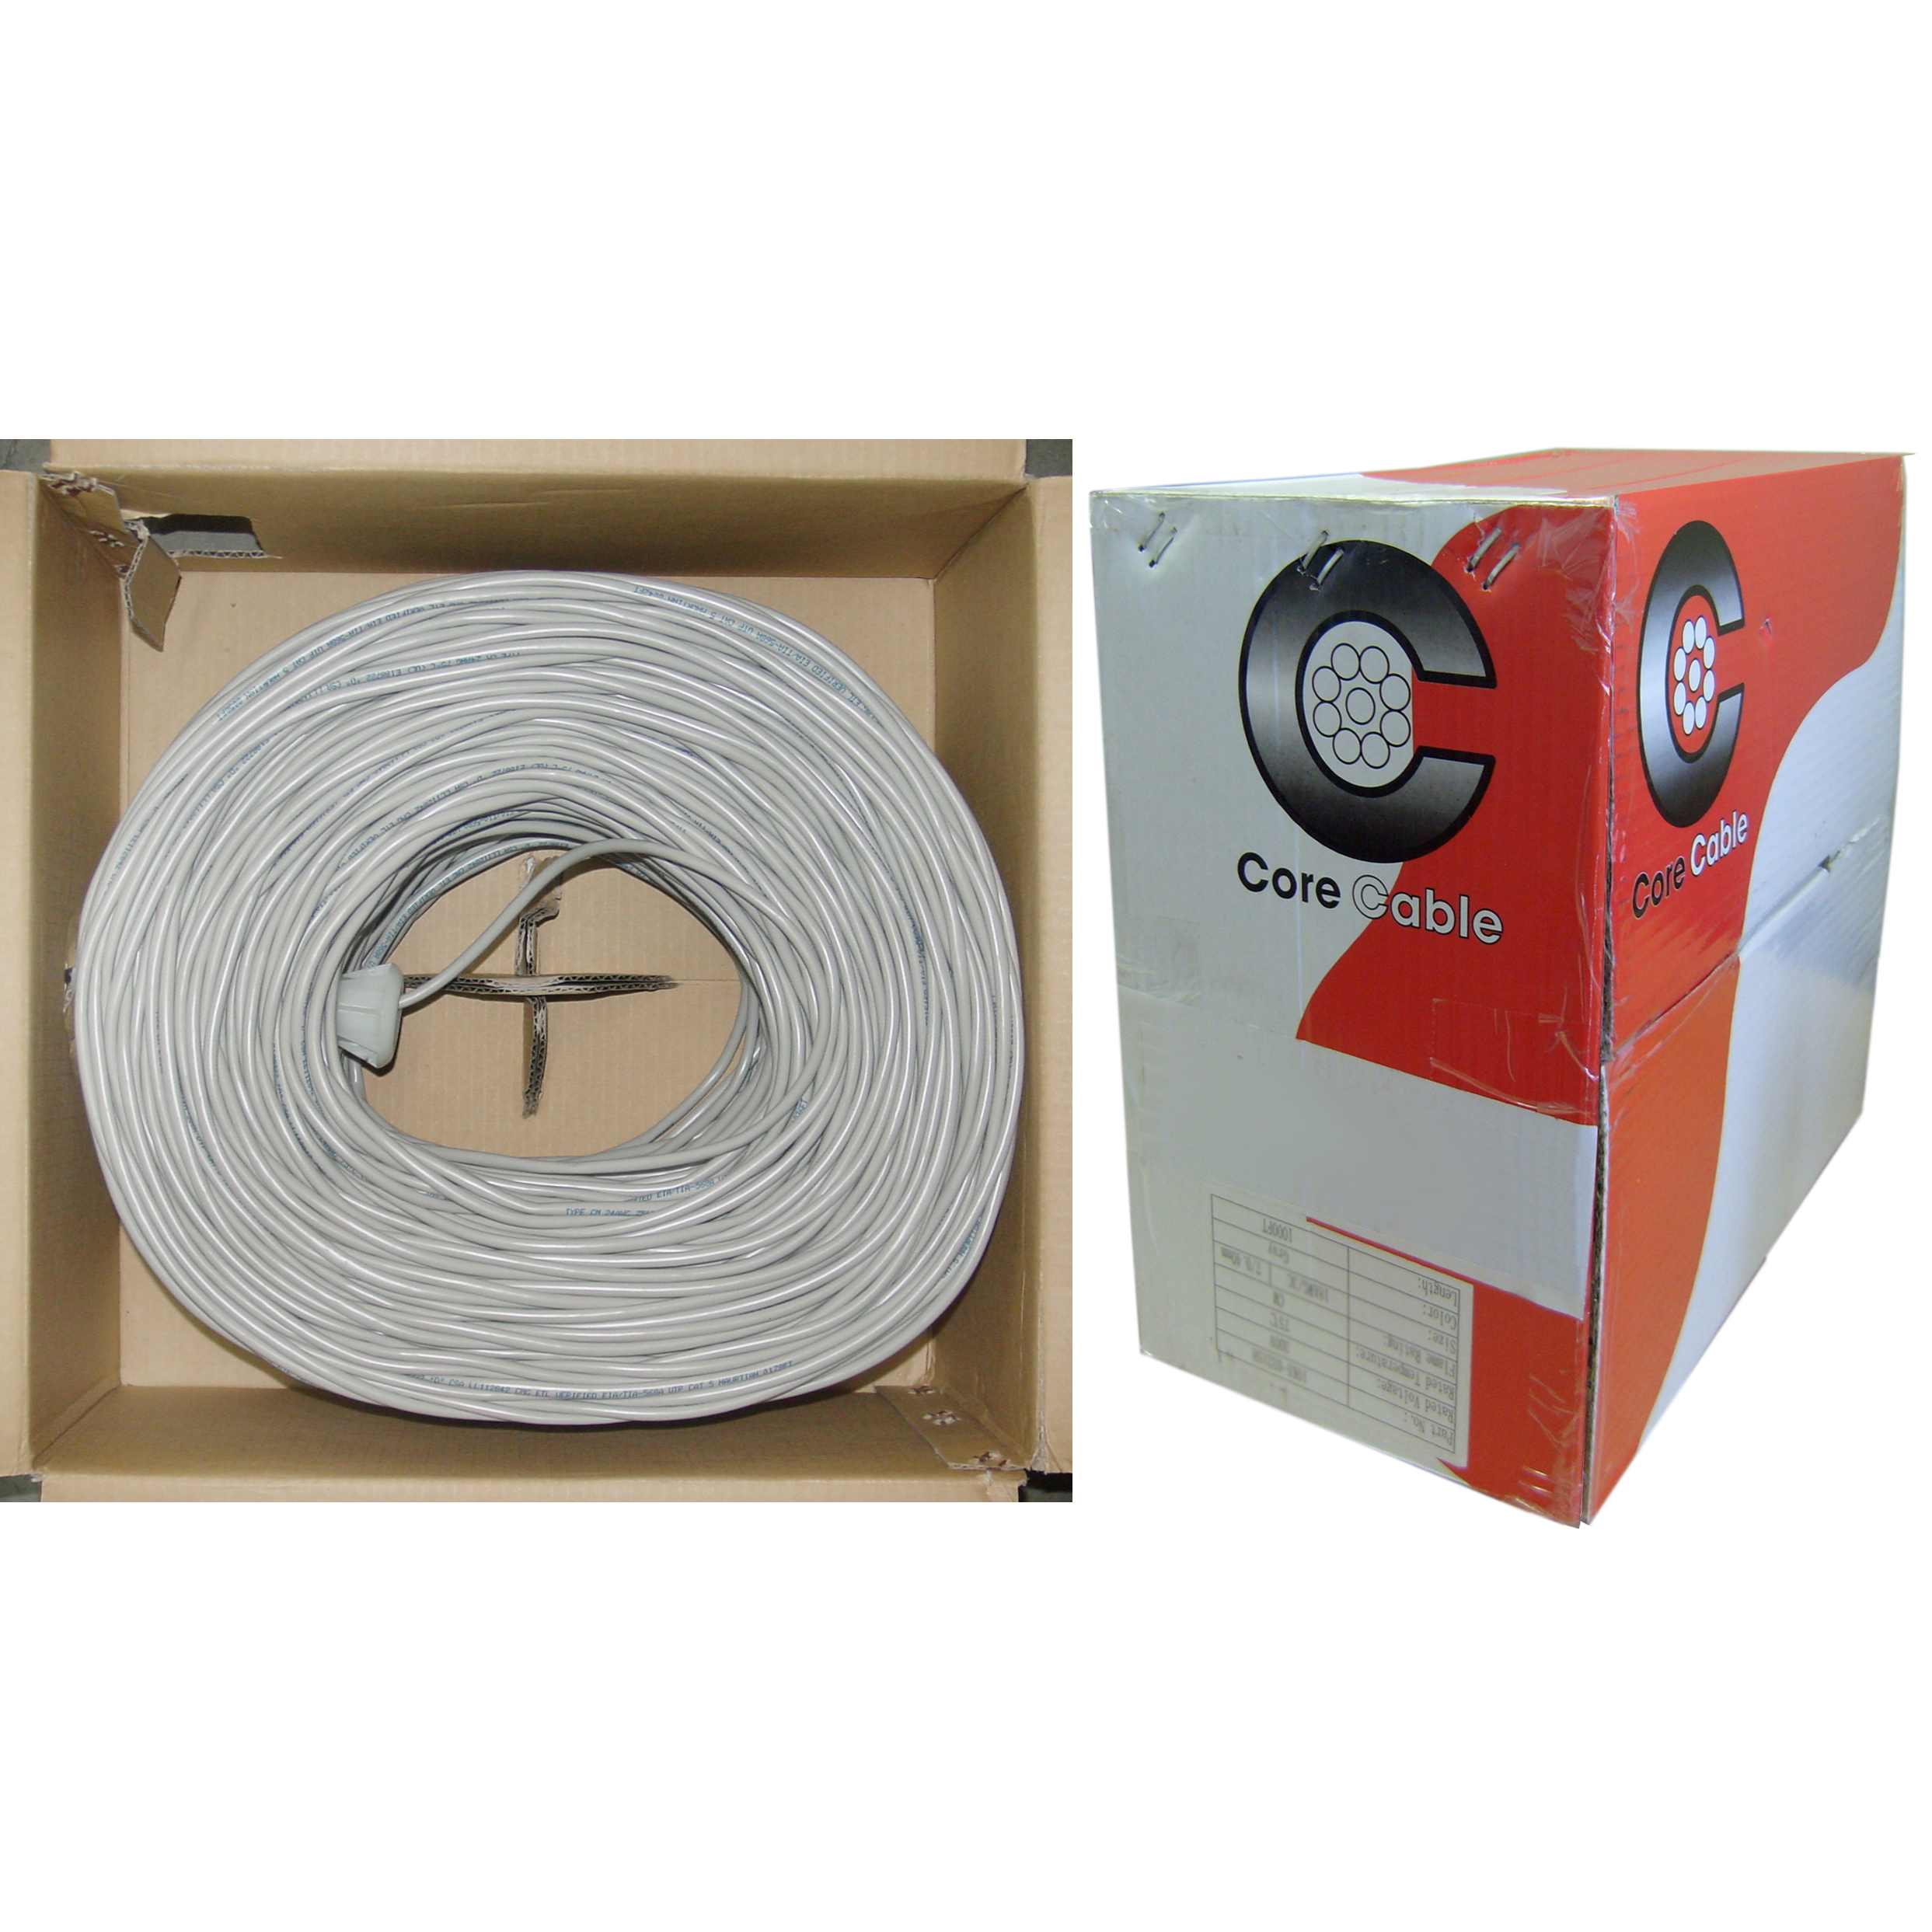 1000ft - 14/2 Stranded Security Cable, CMR, Gray - Pullbox